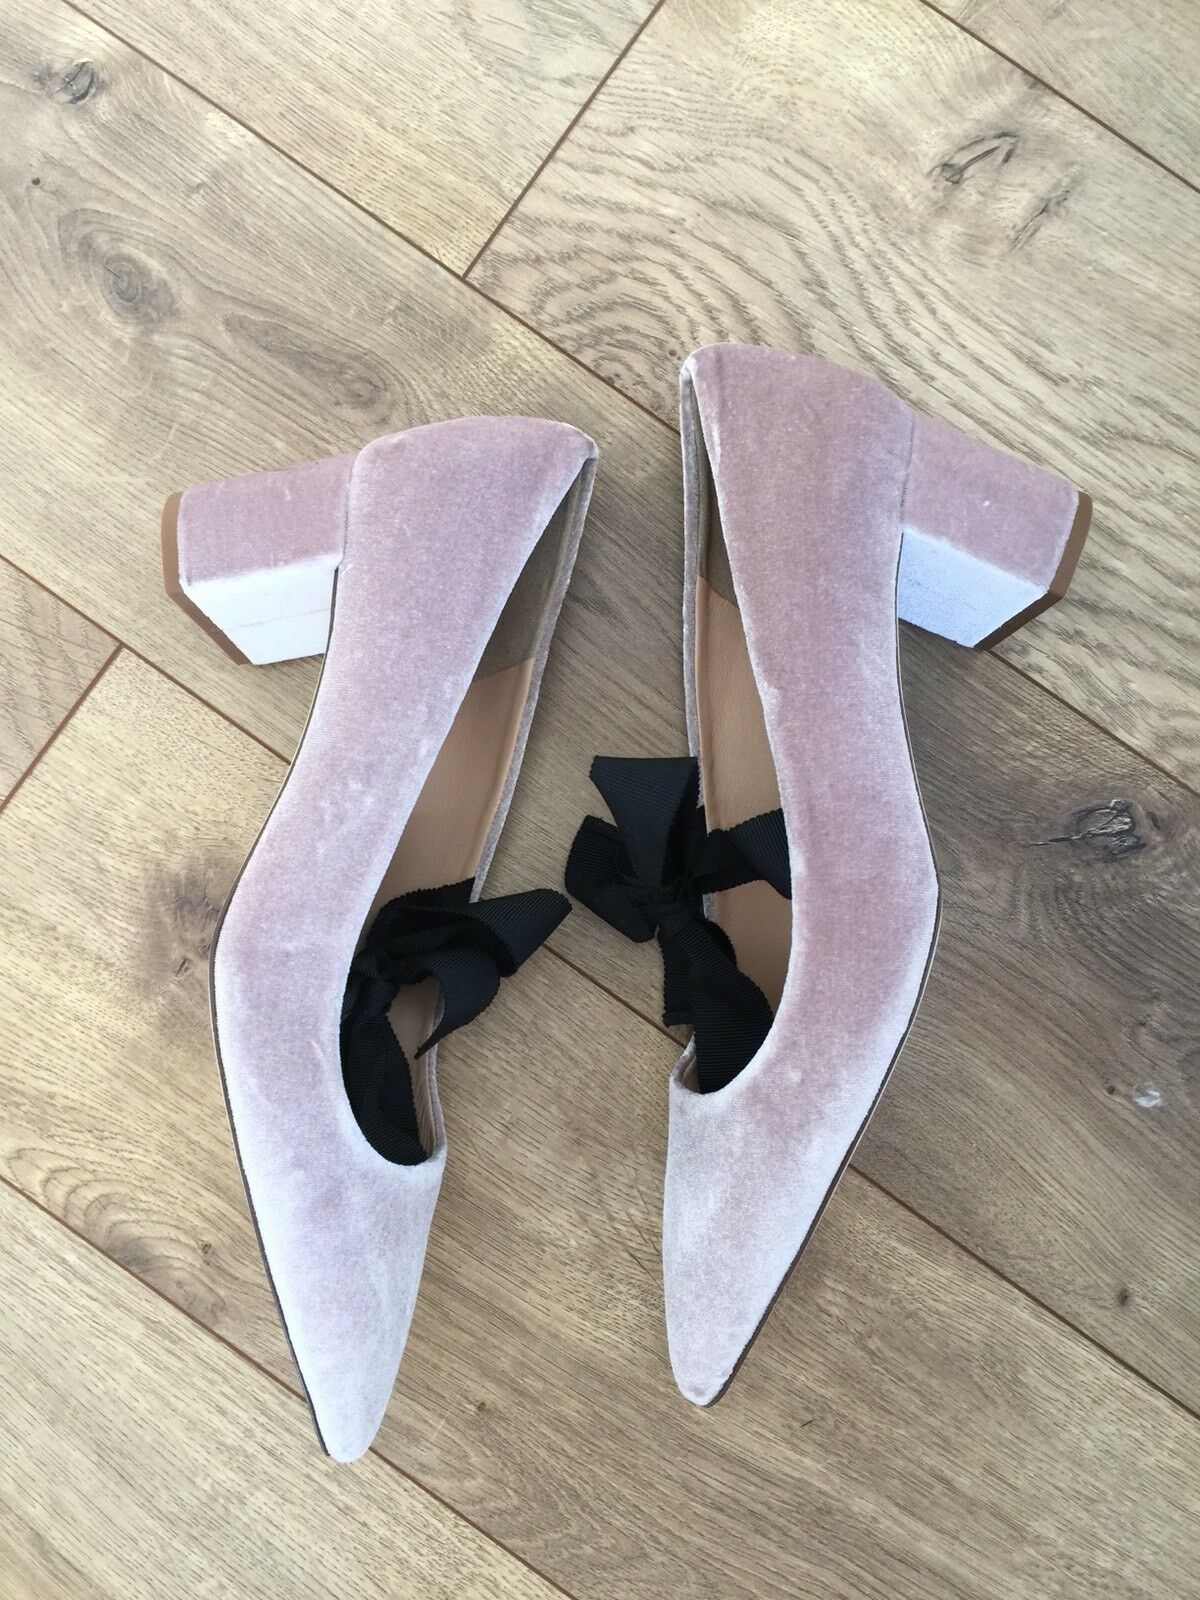 NEW J.Crew Avery Velvet Pumps with Bow Sz 10 10 Sz VINTAGE QUARTZ Pink Shoes H1859 128dc8